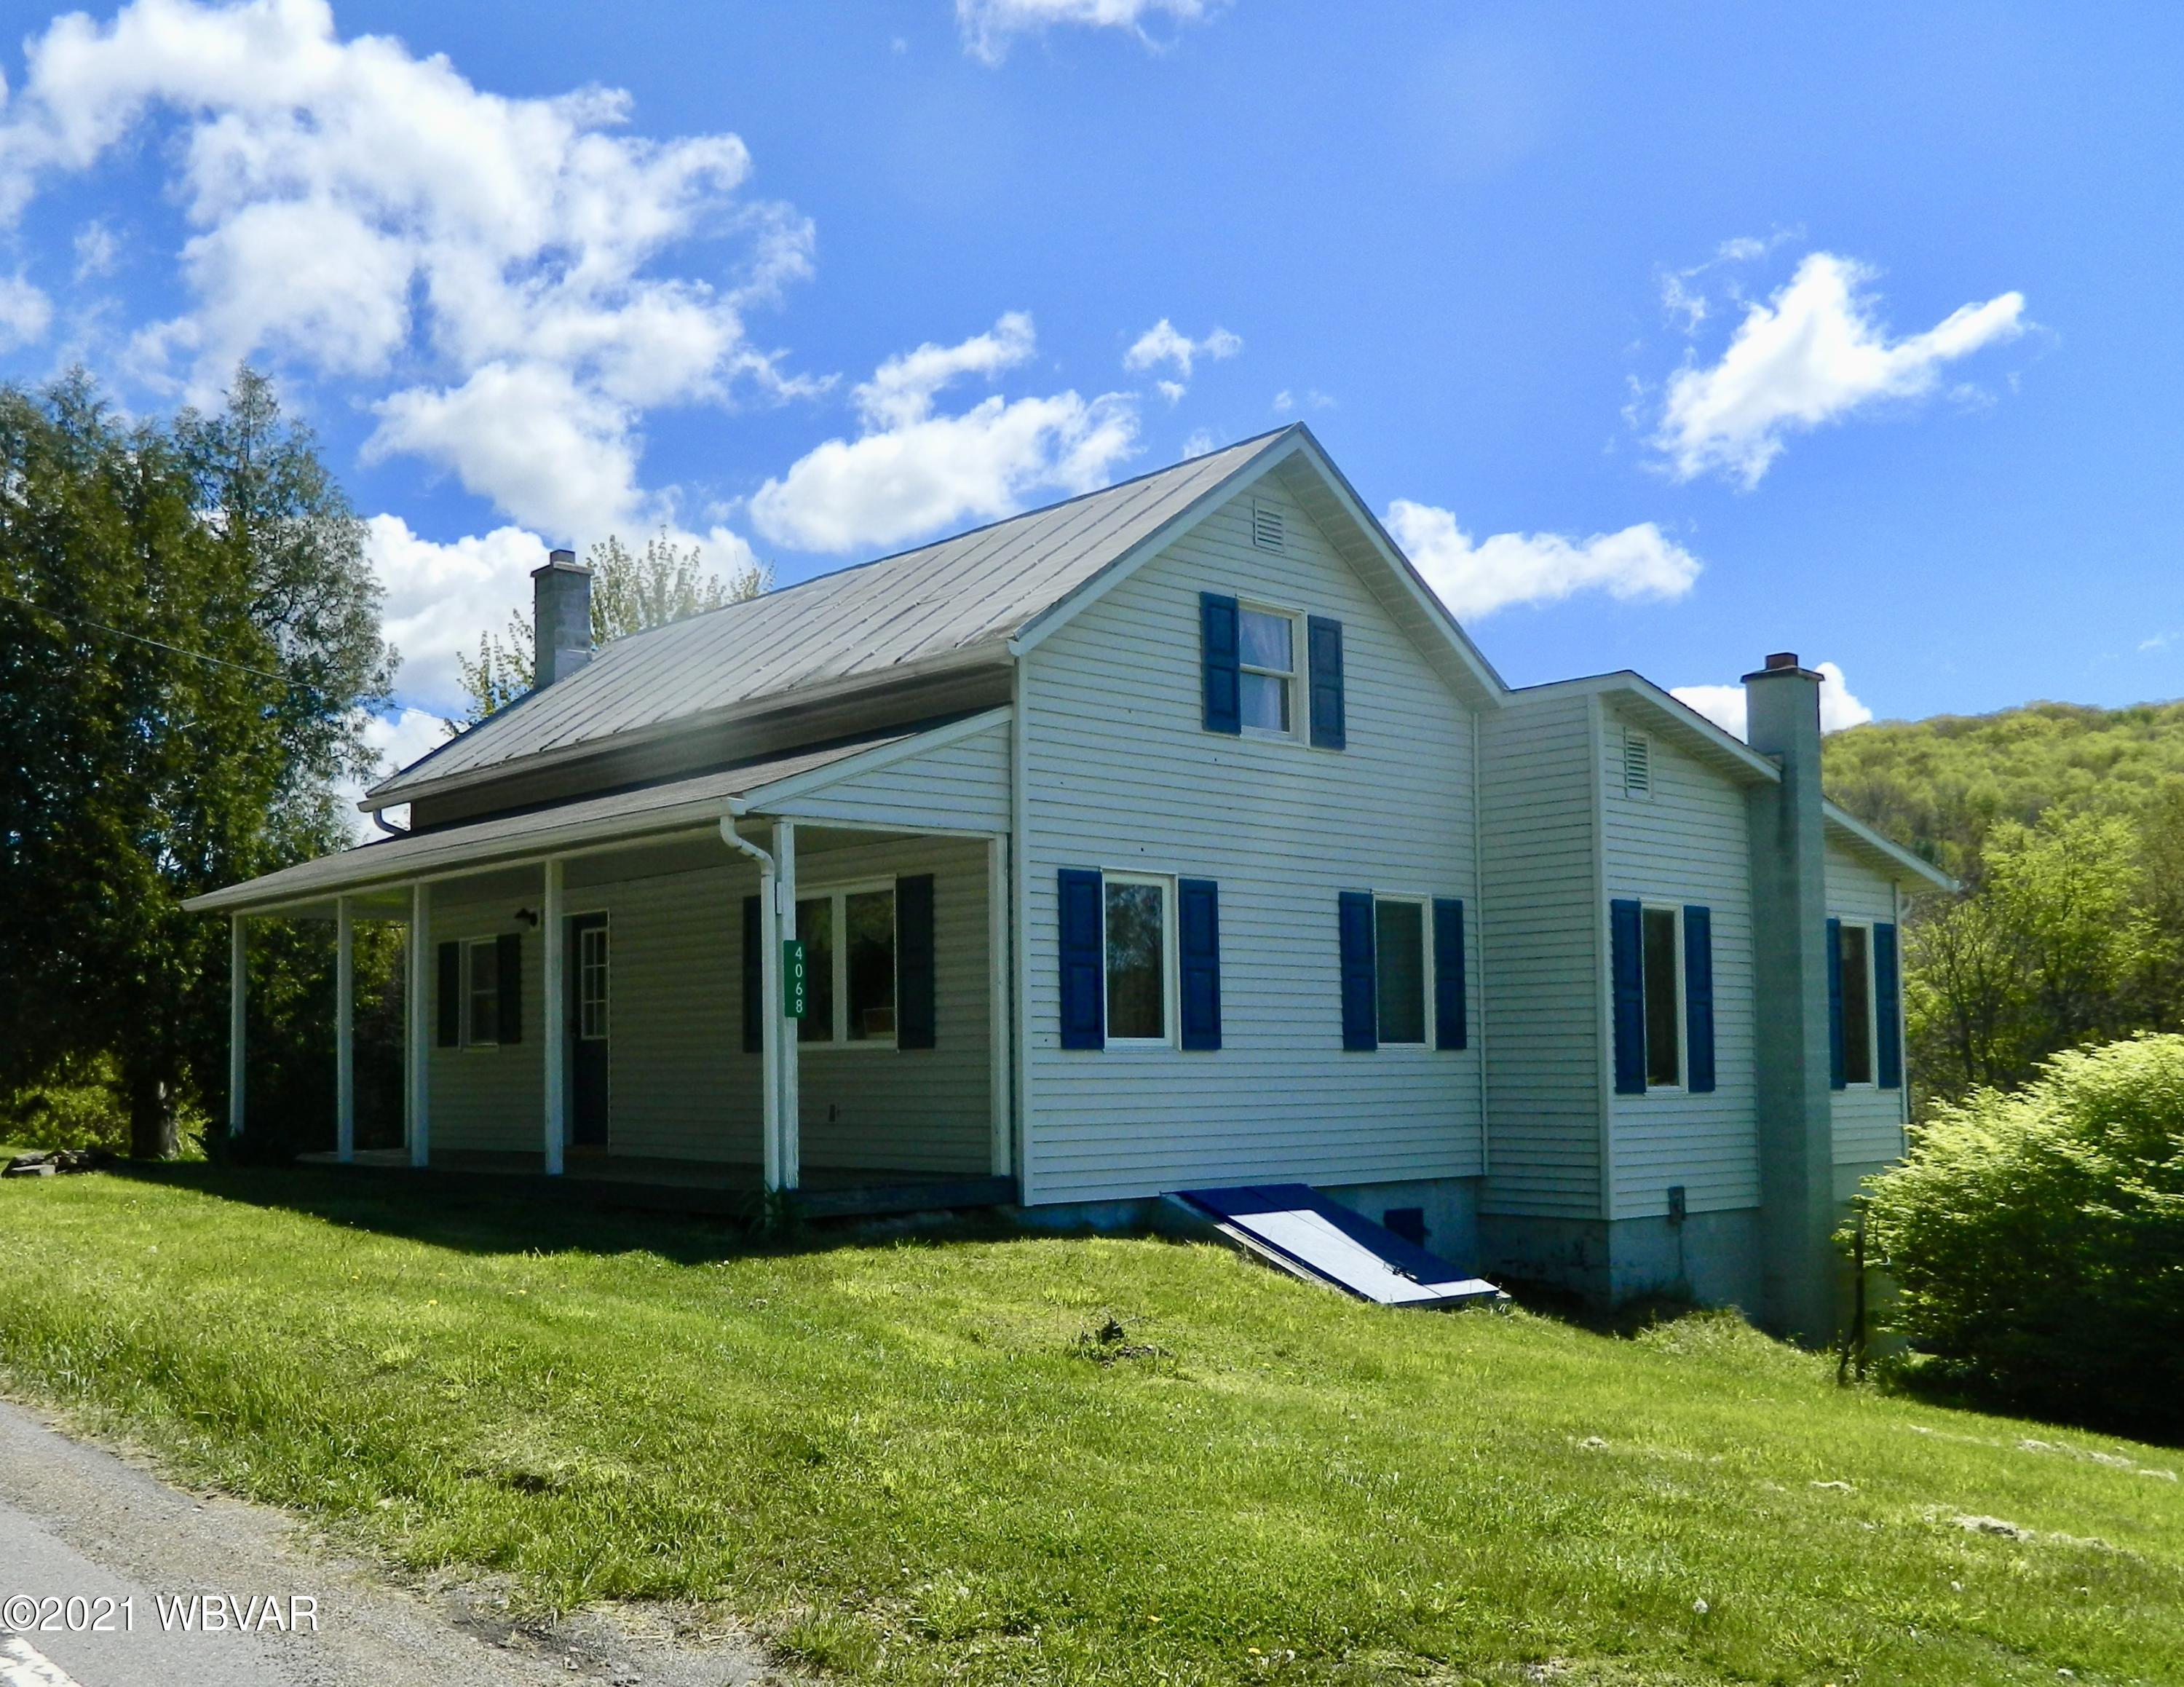 4068 PA-42 HIGHWAY, Unityville, PA 17774, 3 Bedrooms Bedrooms, ,1 BathroomBathrooms,Residential,For sale,PA-42,WB-92517